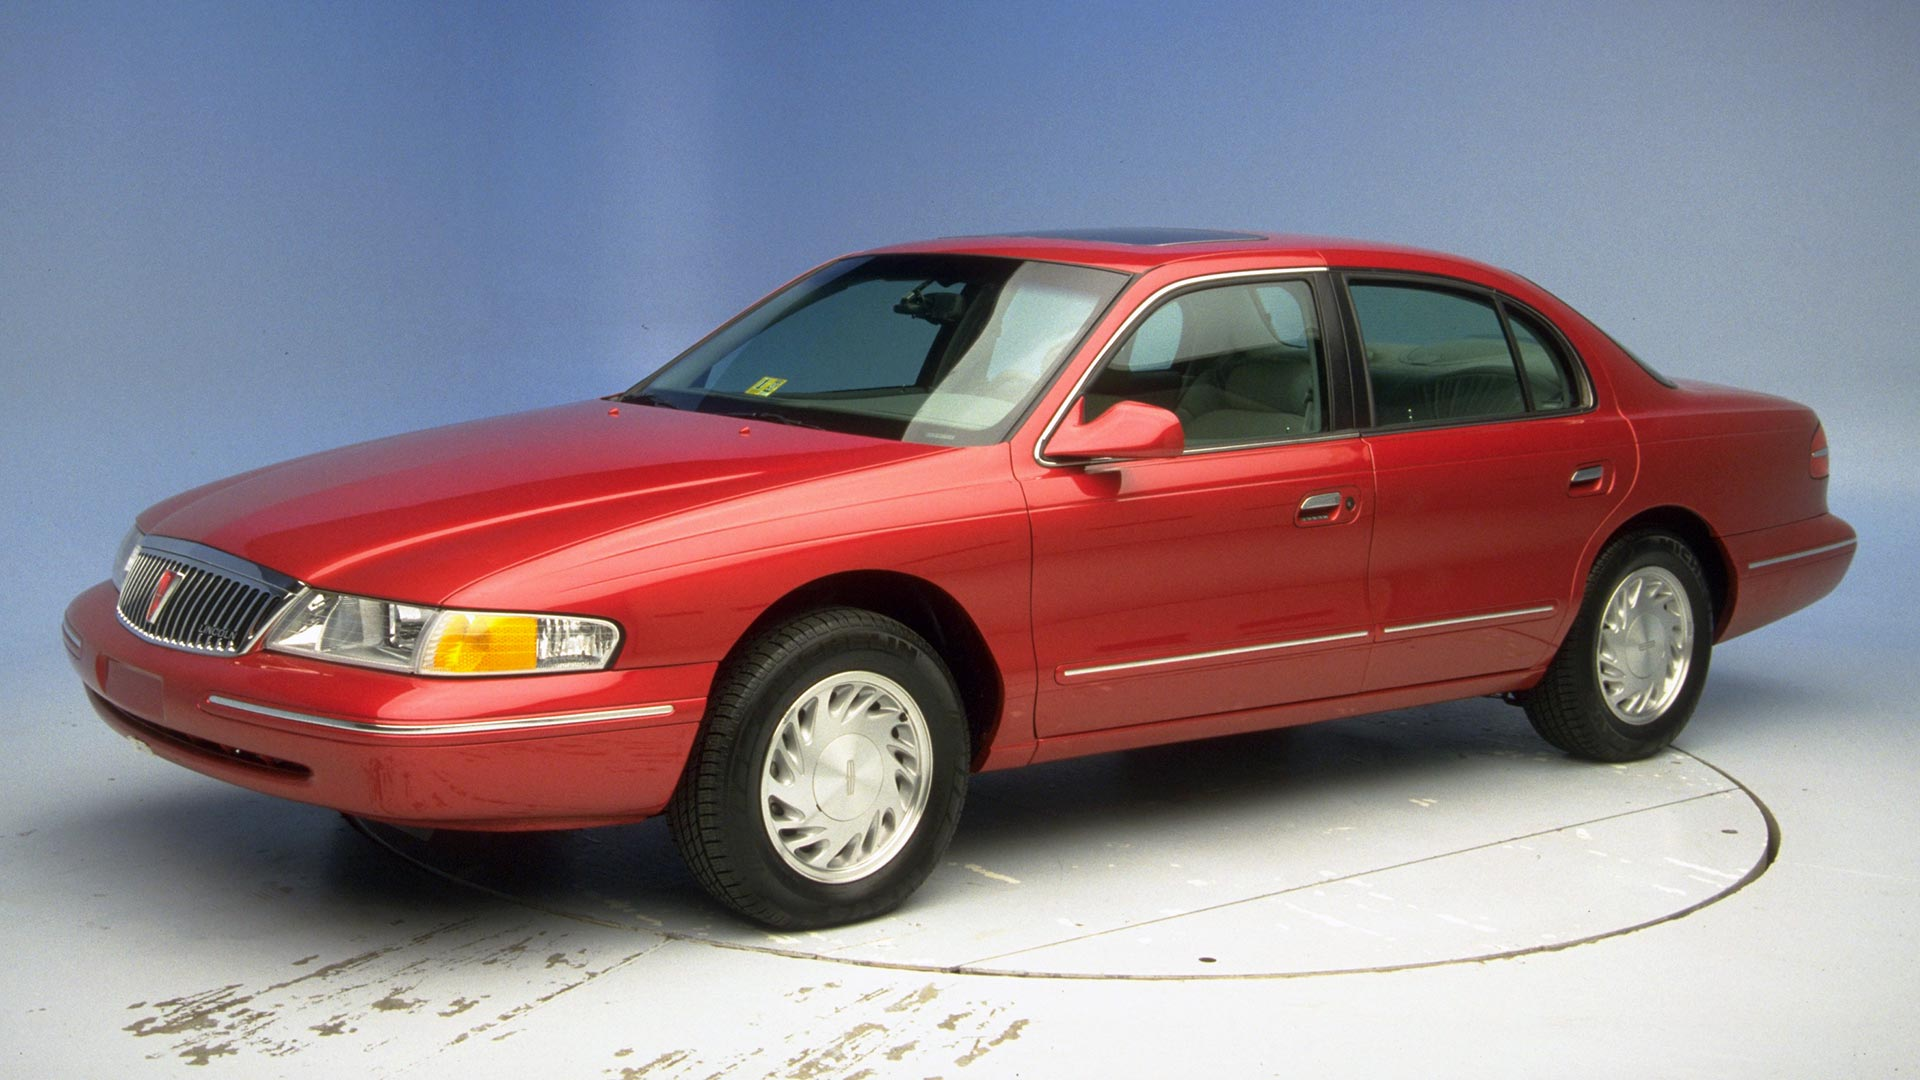 1998 Lincoln Continental 4-door sedan